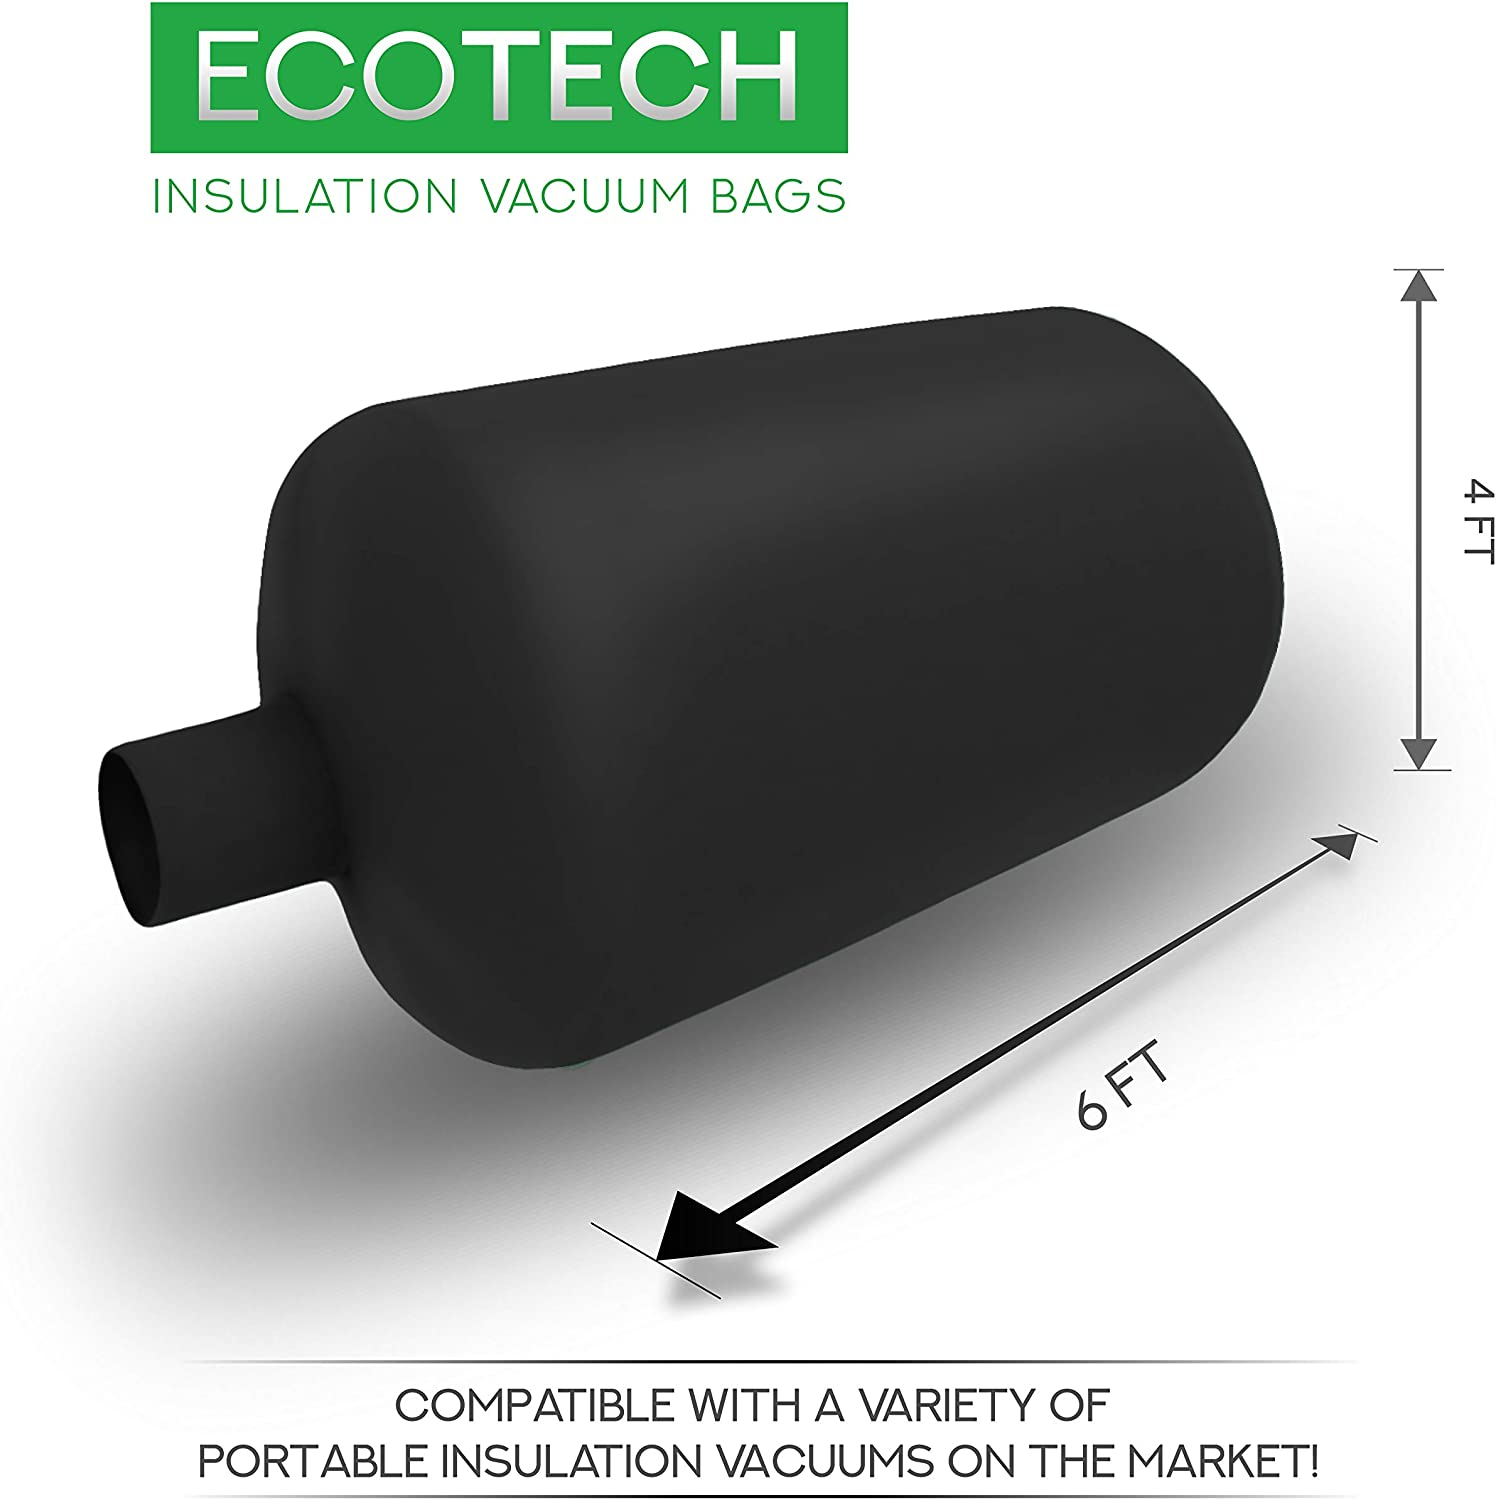 1 Pack, Black Available in Green and Black Ecotech Insulation Vacuum Bags